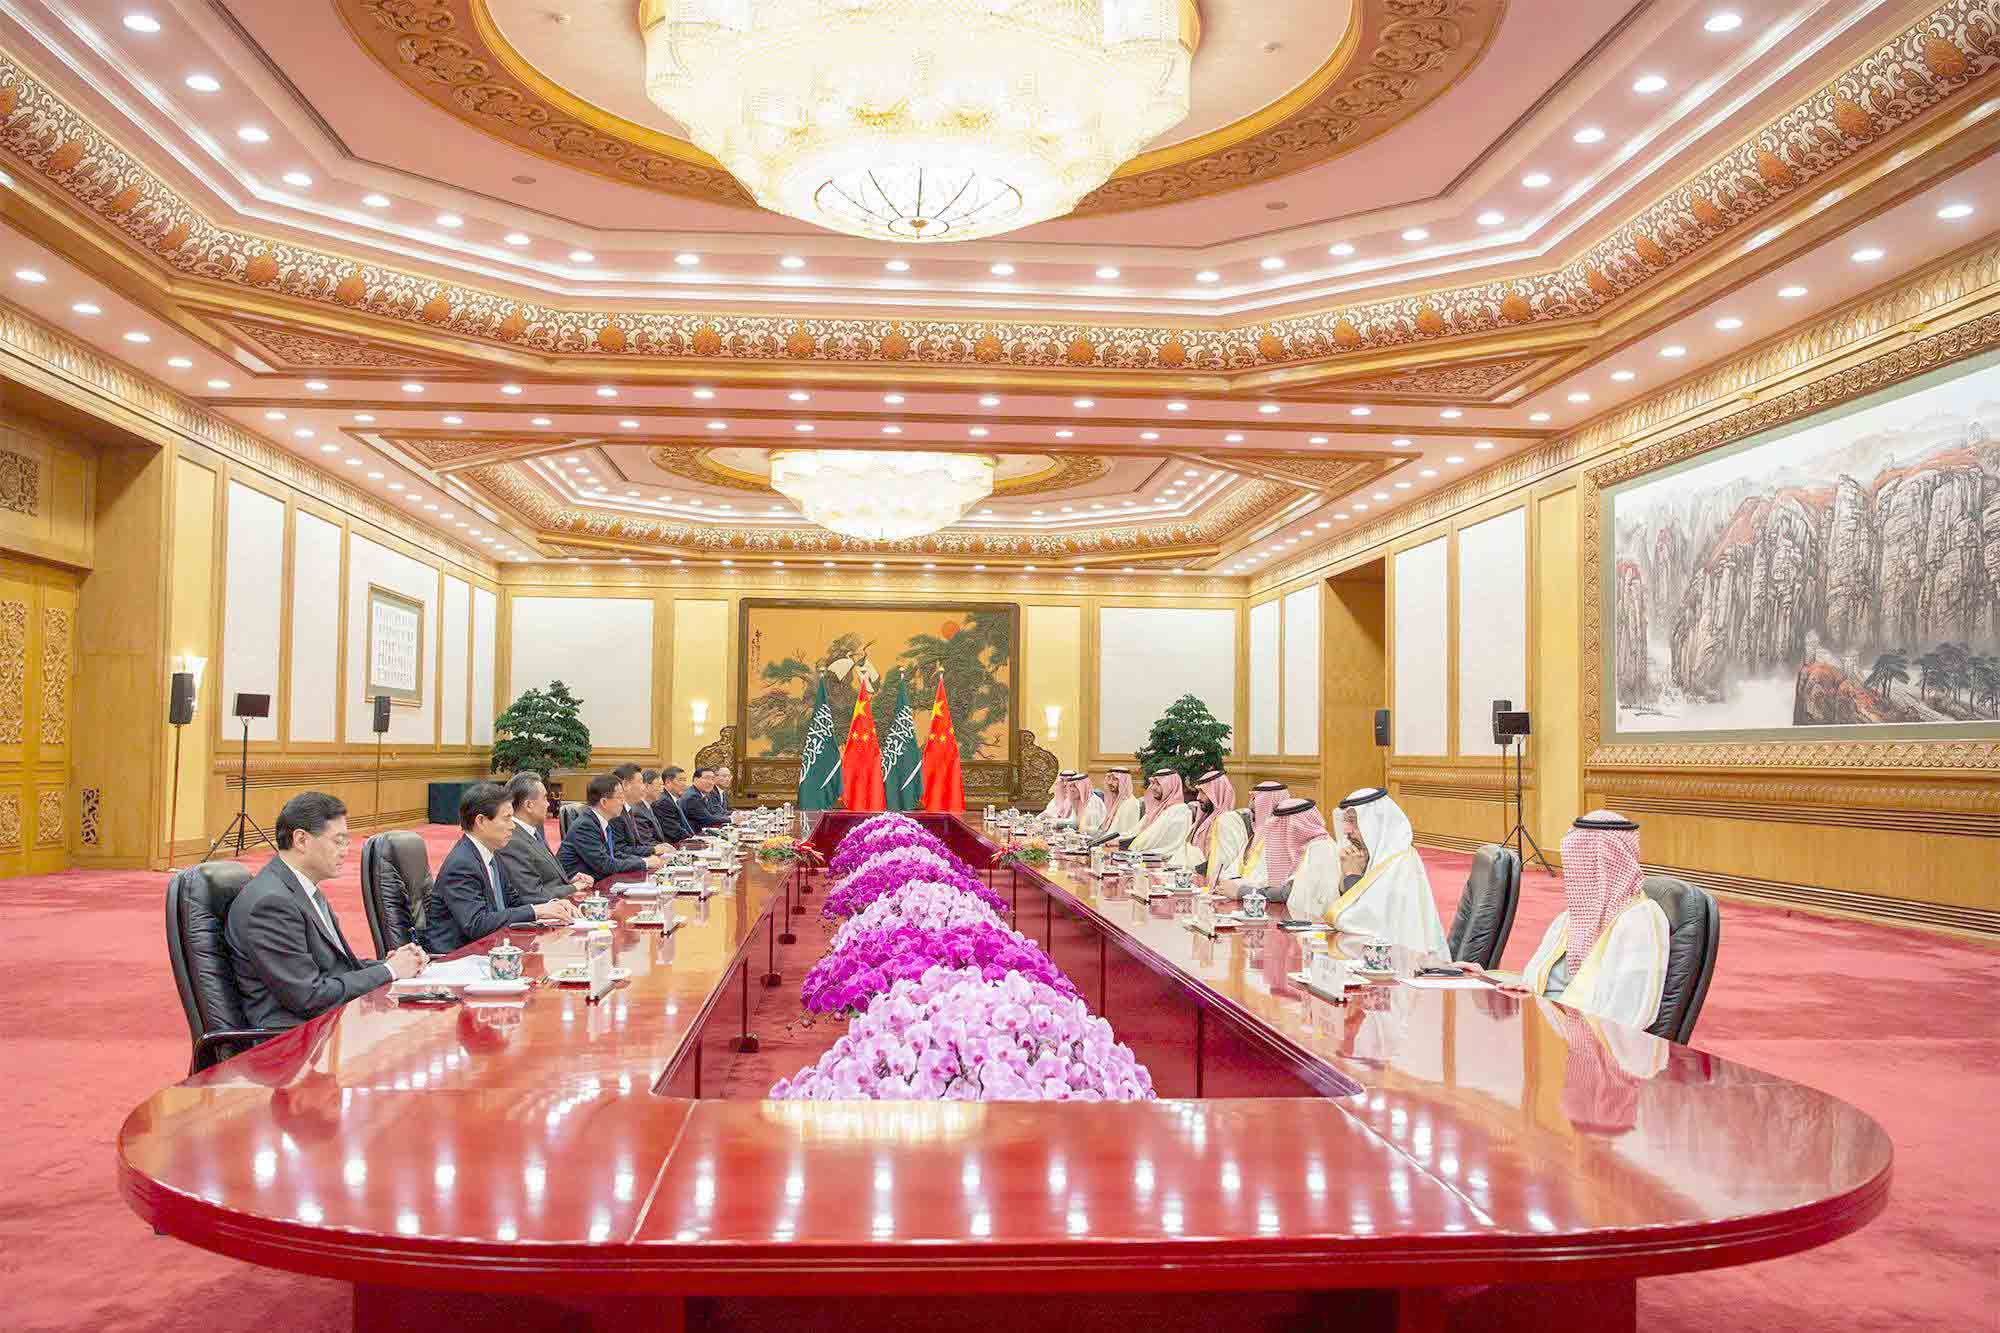 Saudi Crown Prince Mohammed bin Salman bin Abdulaziz (5-R) meets with Chinese President Xi Jinping (5-L) at the Great Hall of the People in Beijing, February 22. (SPA)